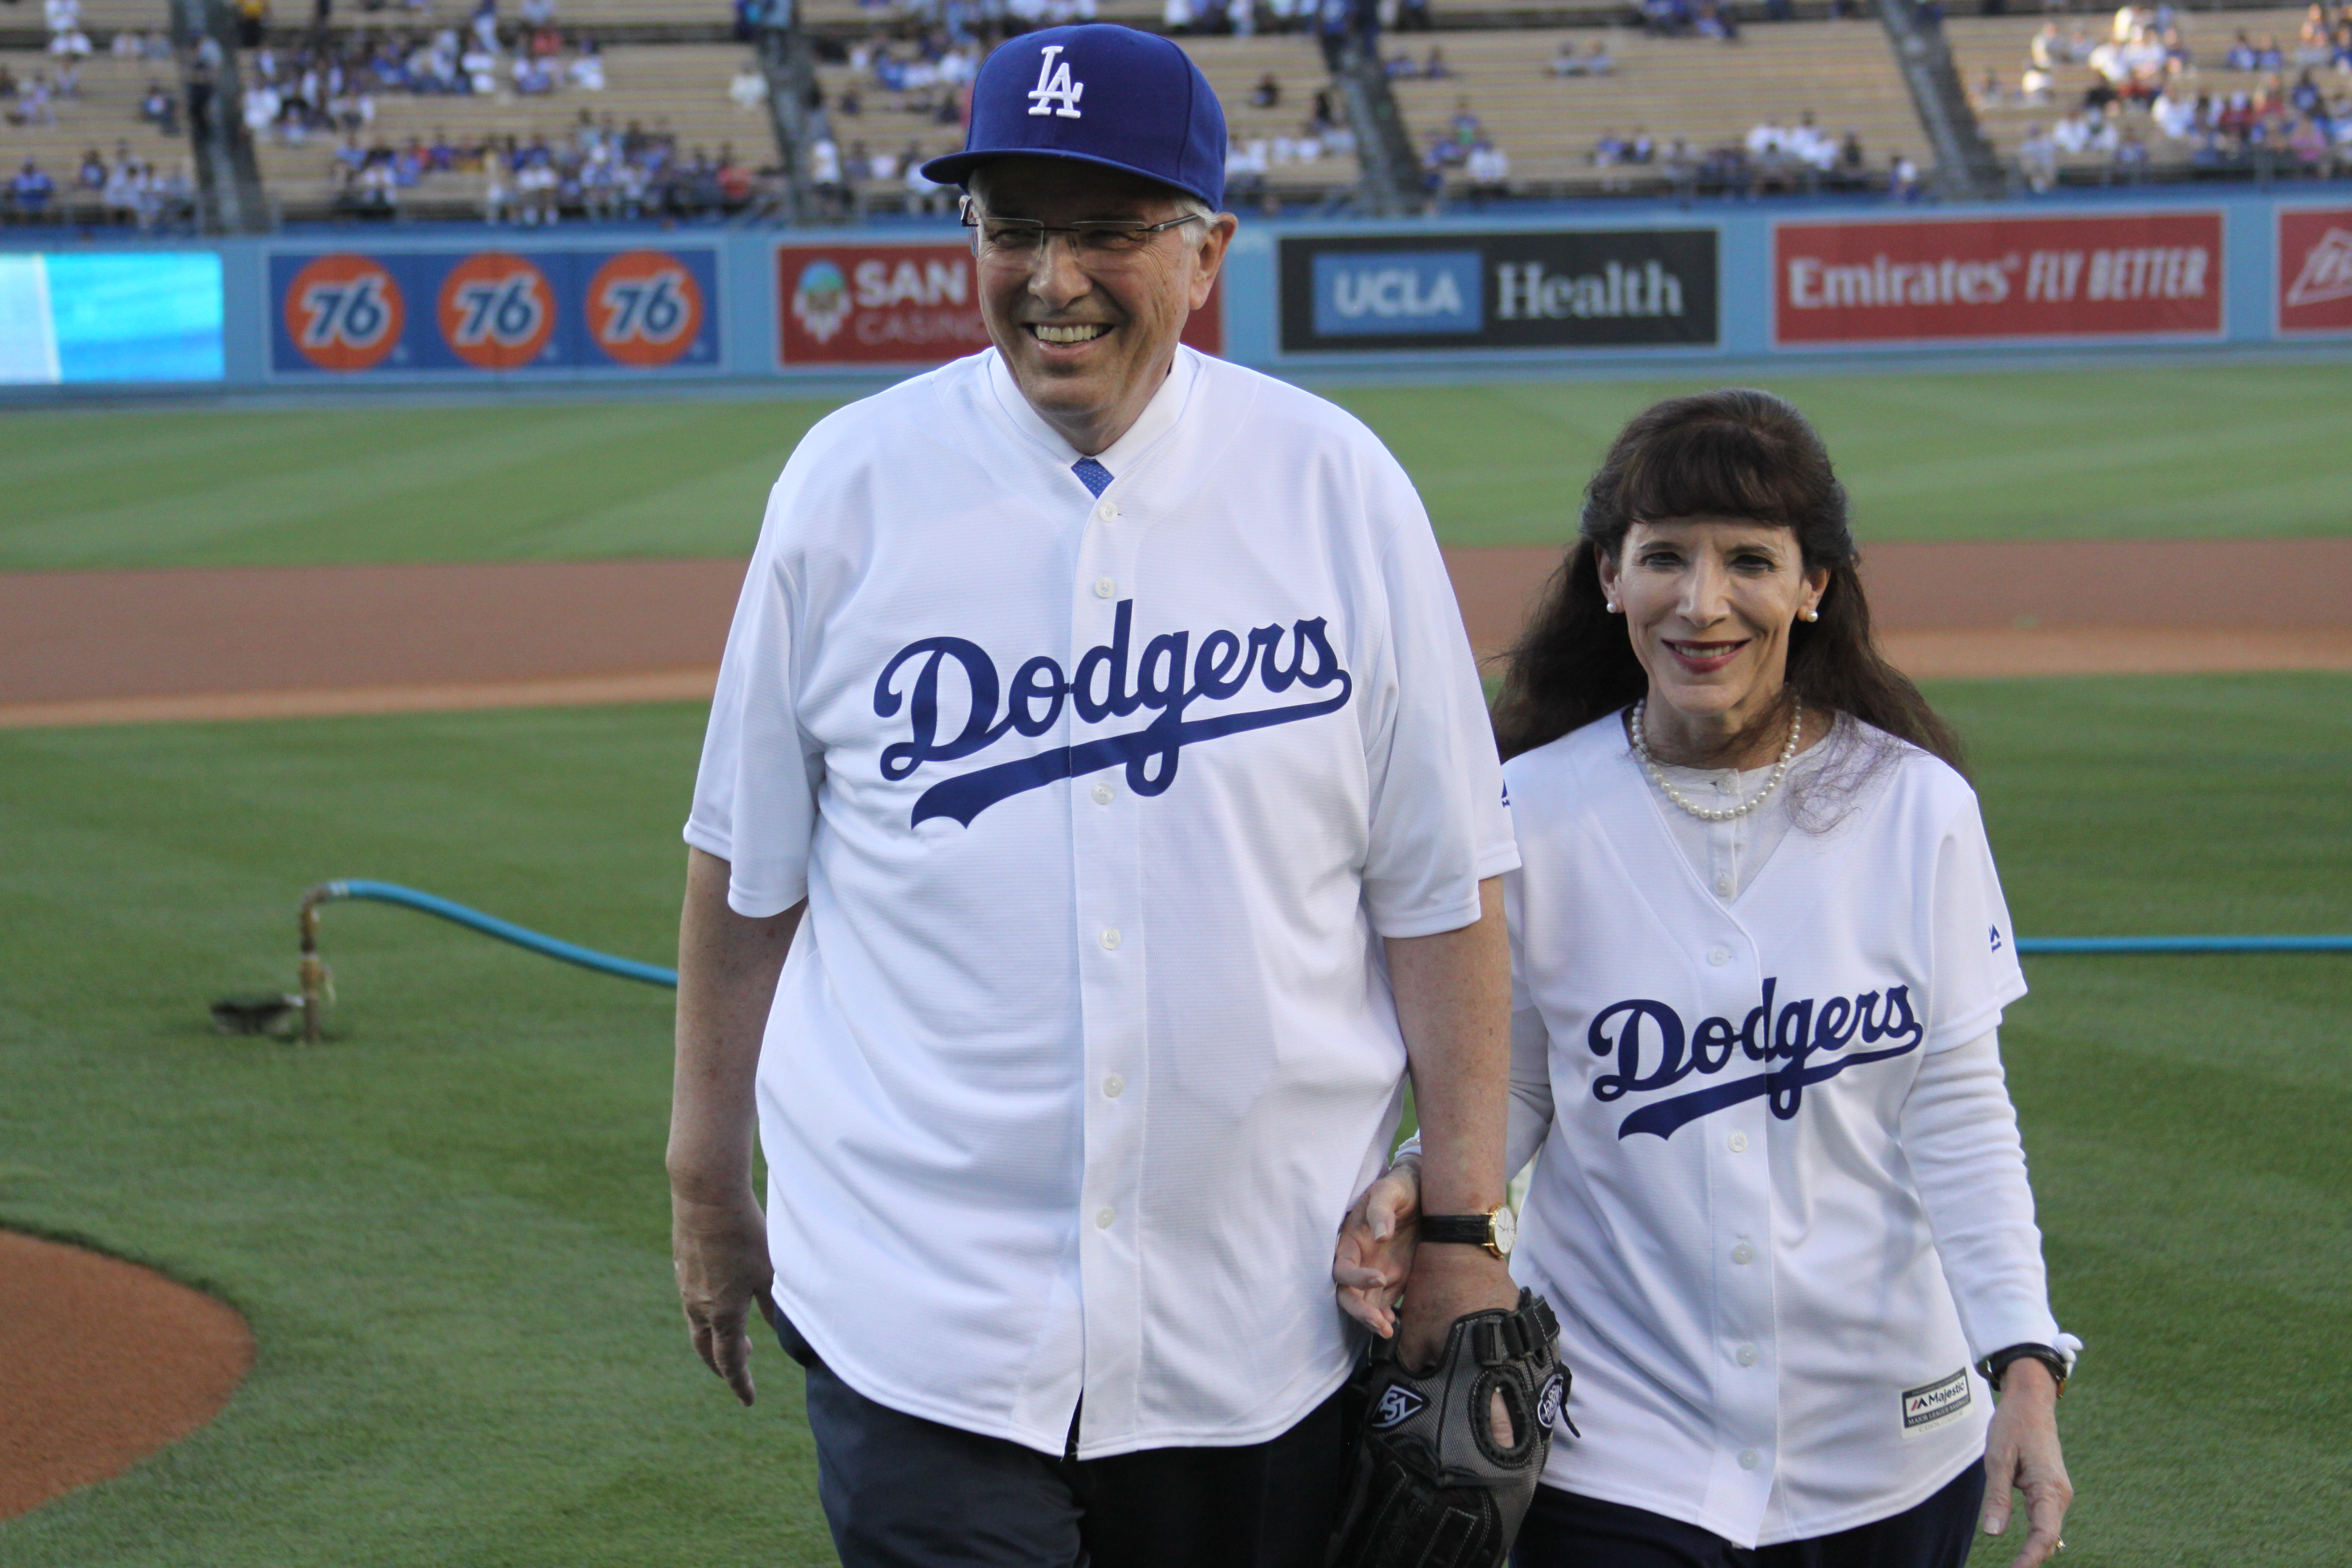 Elder Neil L. Andersen and his wife, Sister Kathy Andersen, on the field during The Church of Jesus Christ of Latter-day Saints Family Night at Dodger Stadium on July 19.